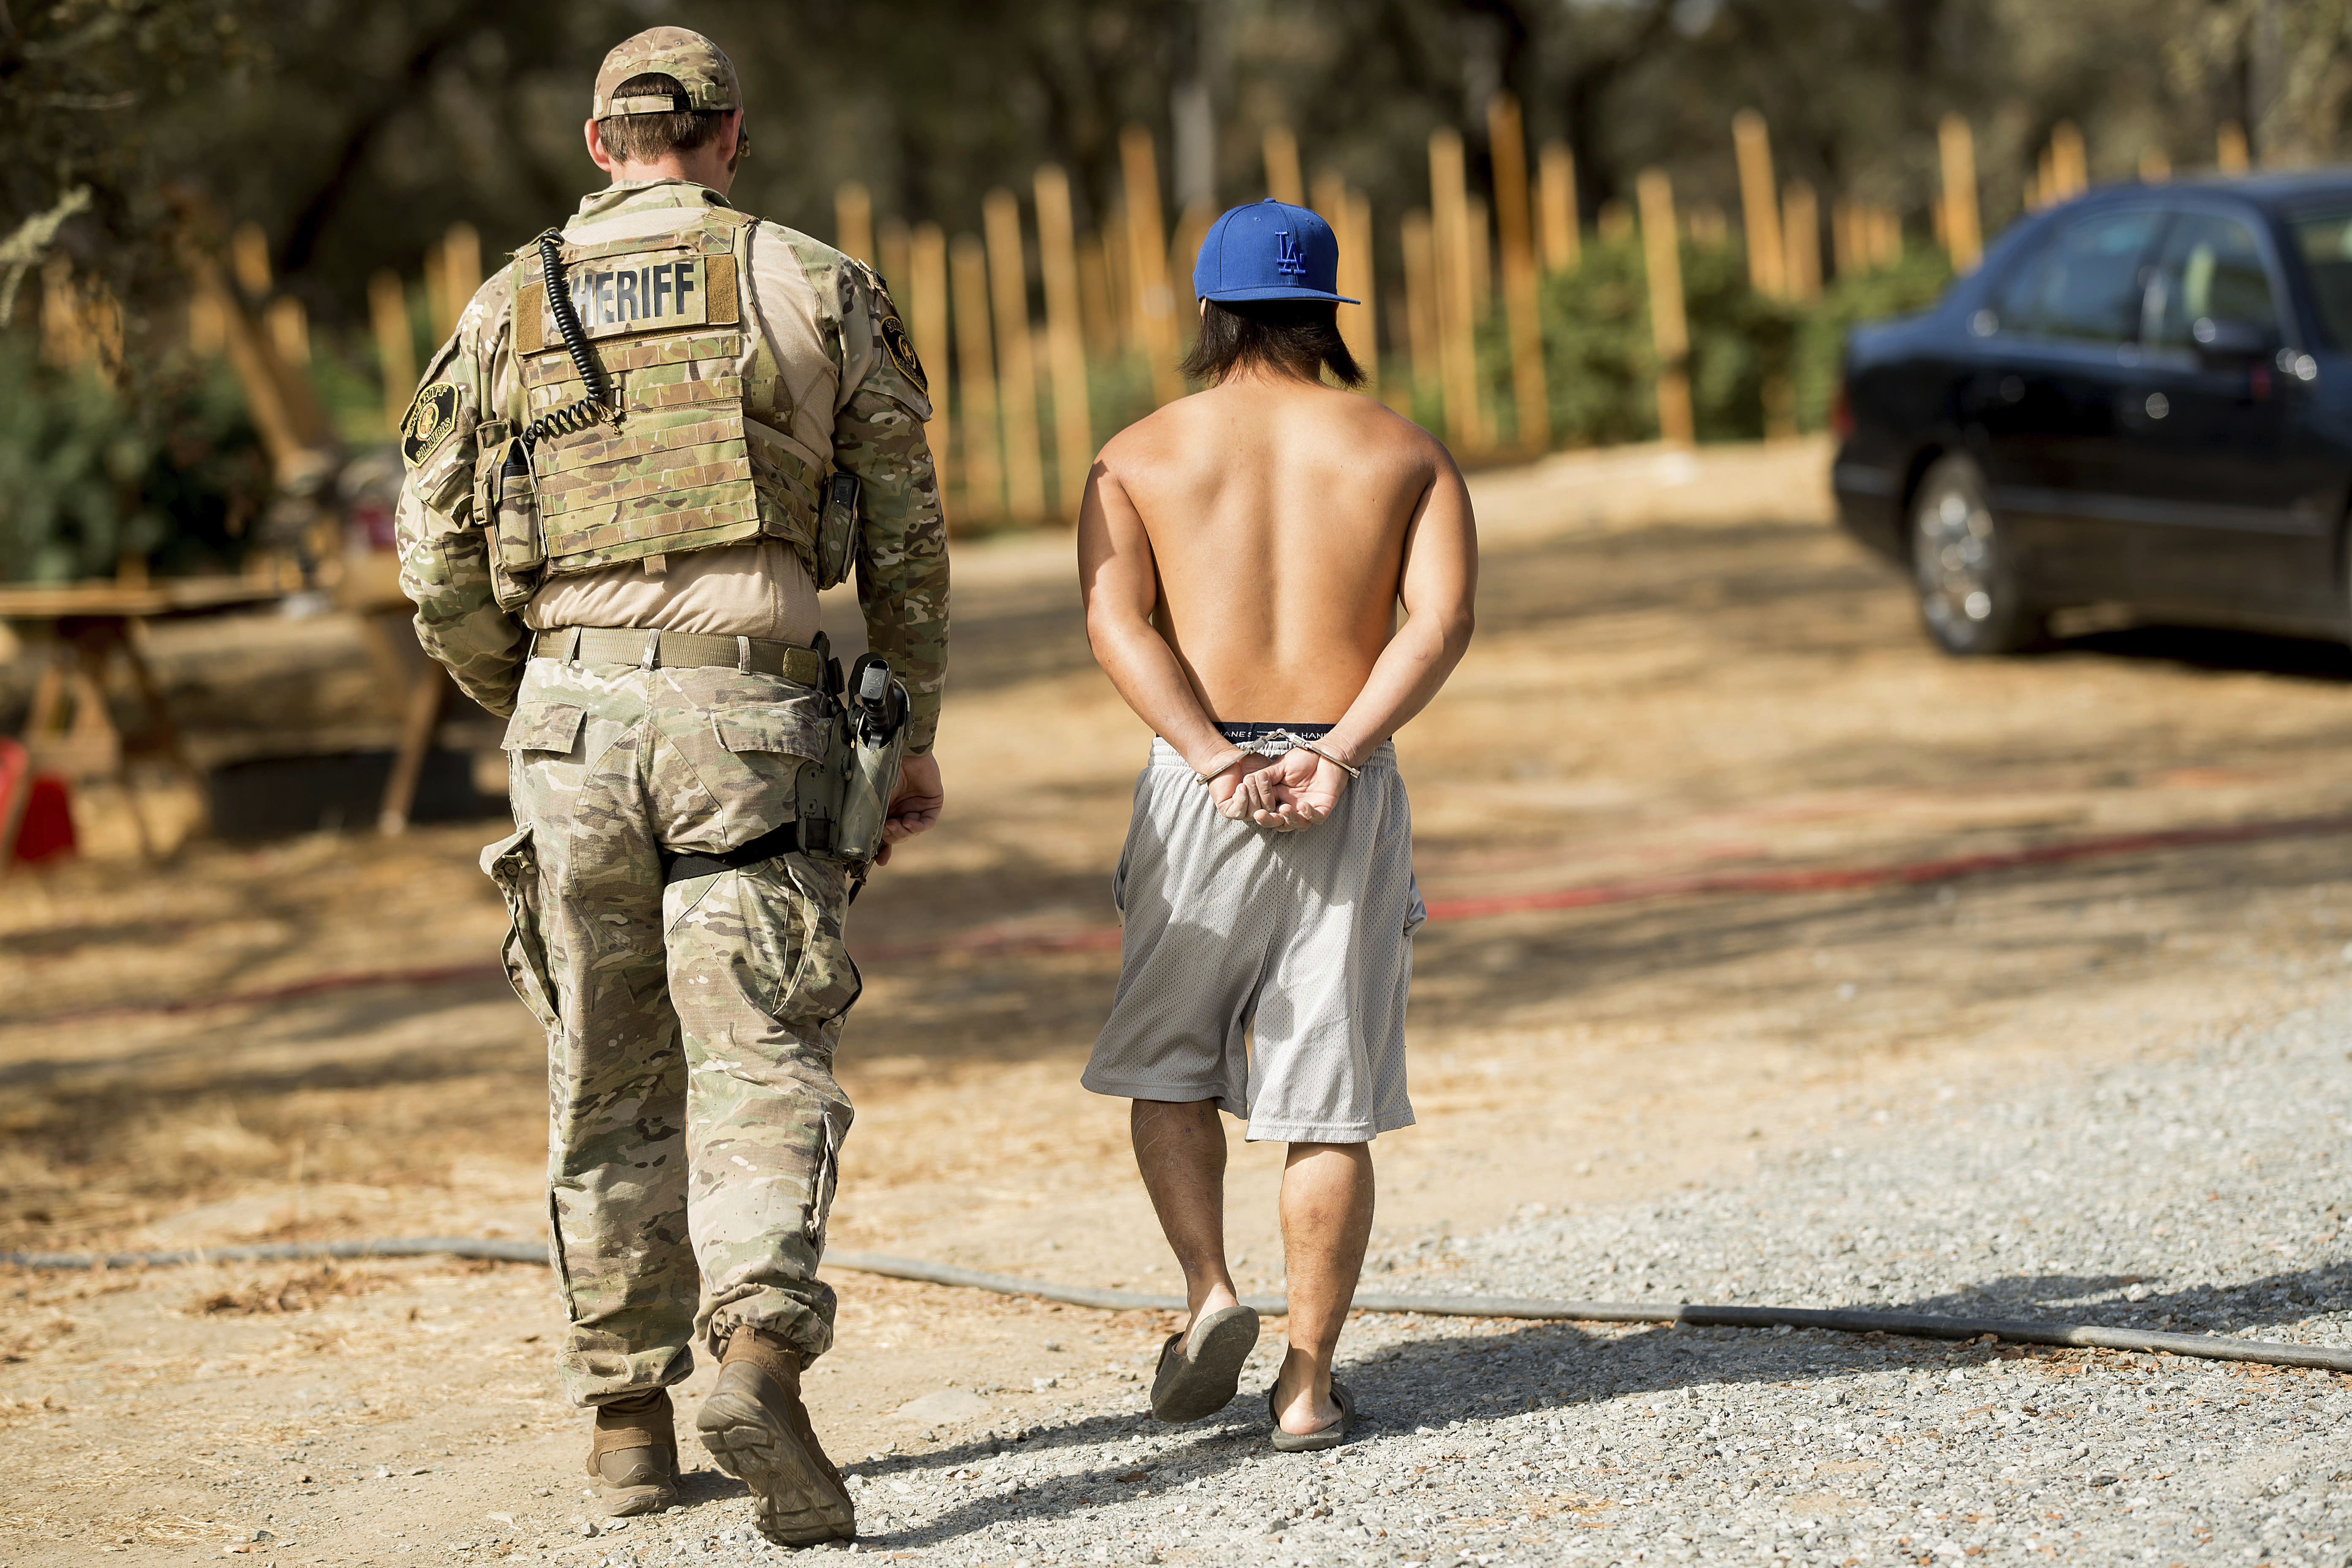 FILE - In this Sept. 29, 2017, file photo, a sheriff's deputy arrests a man for allegedly cultivating marijuana in unincorporated Calaveras County, Calif. Arrest data released by the California Department of Justice show there were 1,181 felony marijuana arrests in California in 2019, down 27% from 2018, of 1,617 arrests and the lowest number since 1954. (AP Photo/Noah Berger, File)